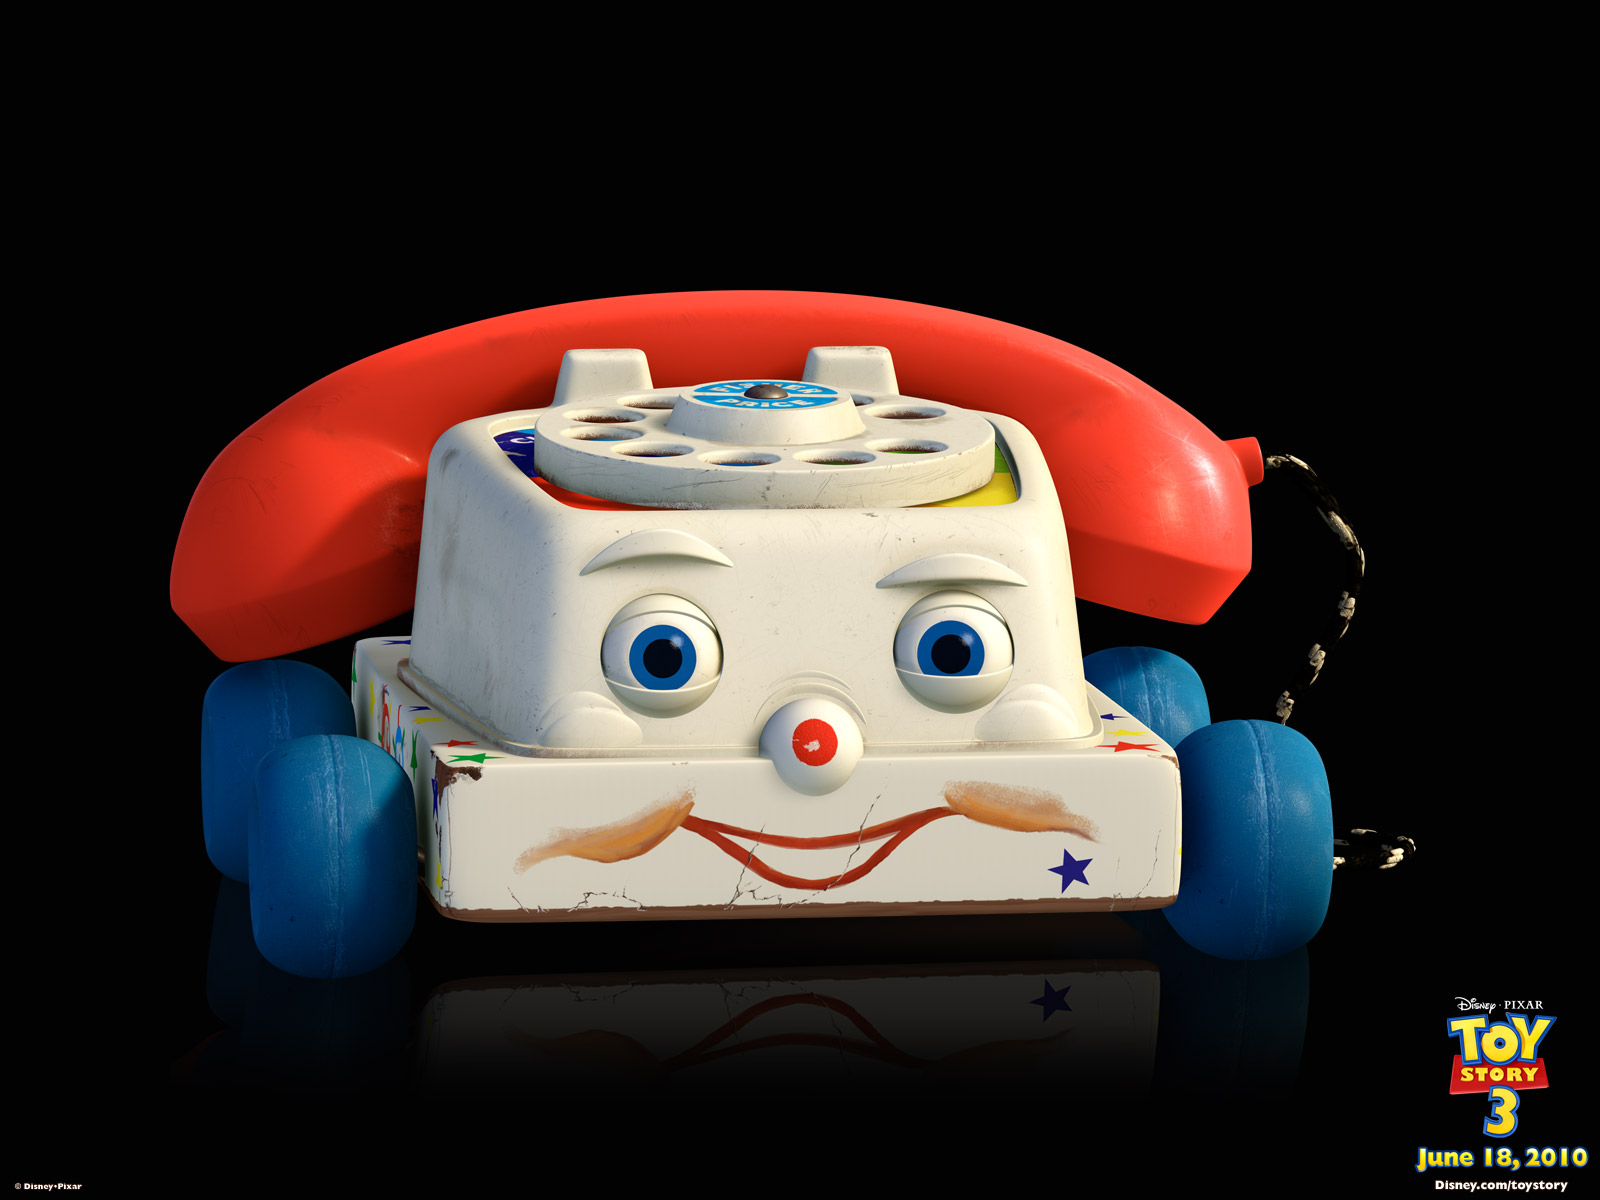 Chatter Telephone Toy From Toy Story 3 Desktop Wallpaper